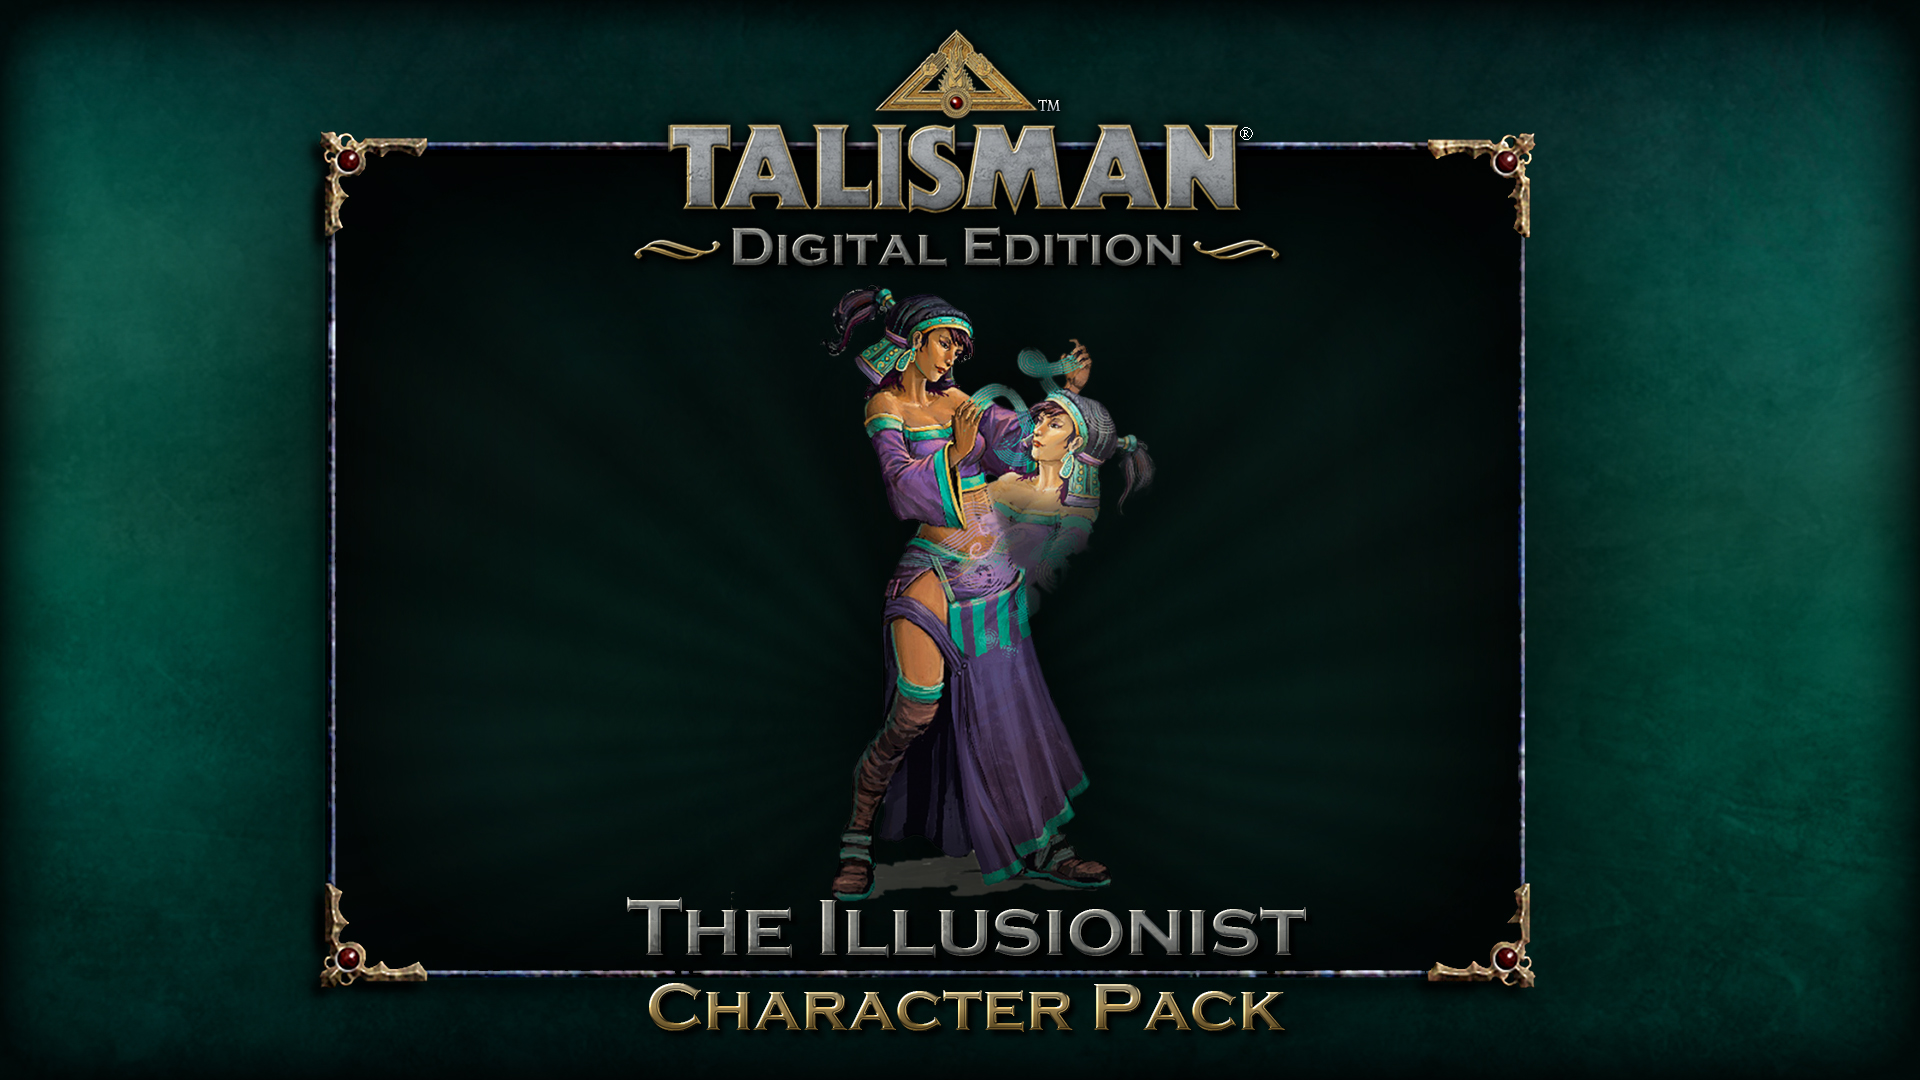 Talisman: Digital Edition - Illusionist Character Pack 2015 pc game Img-4